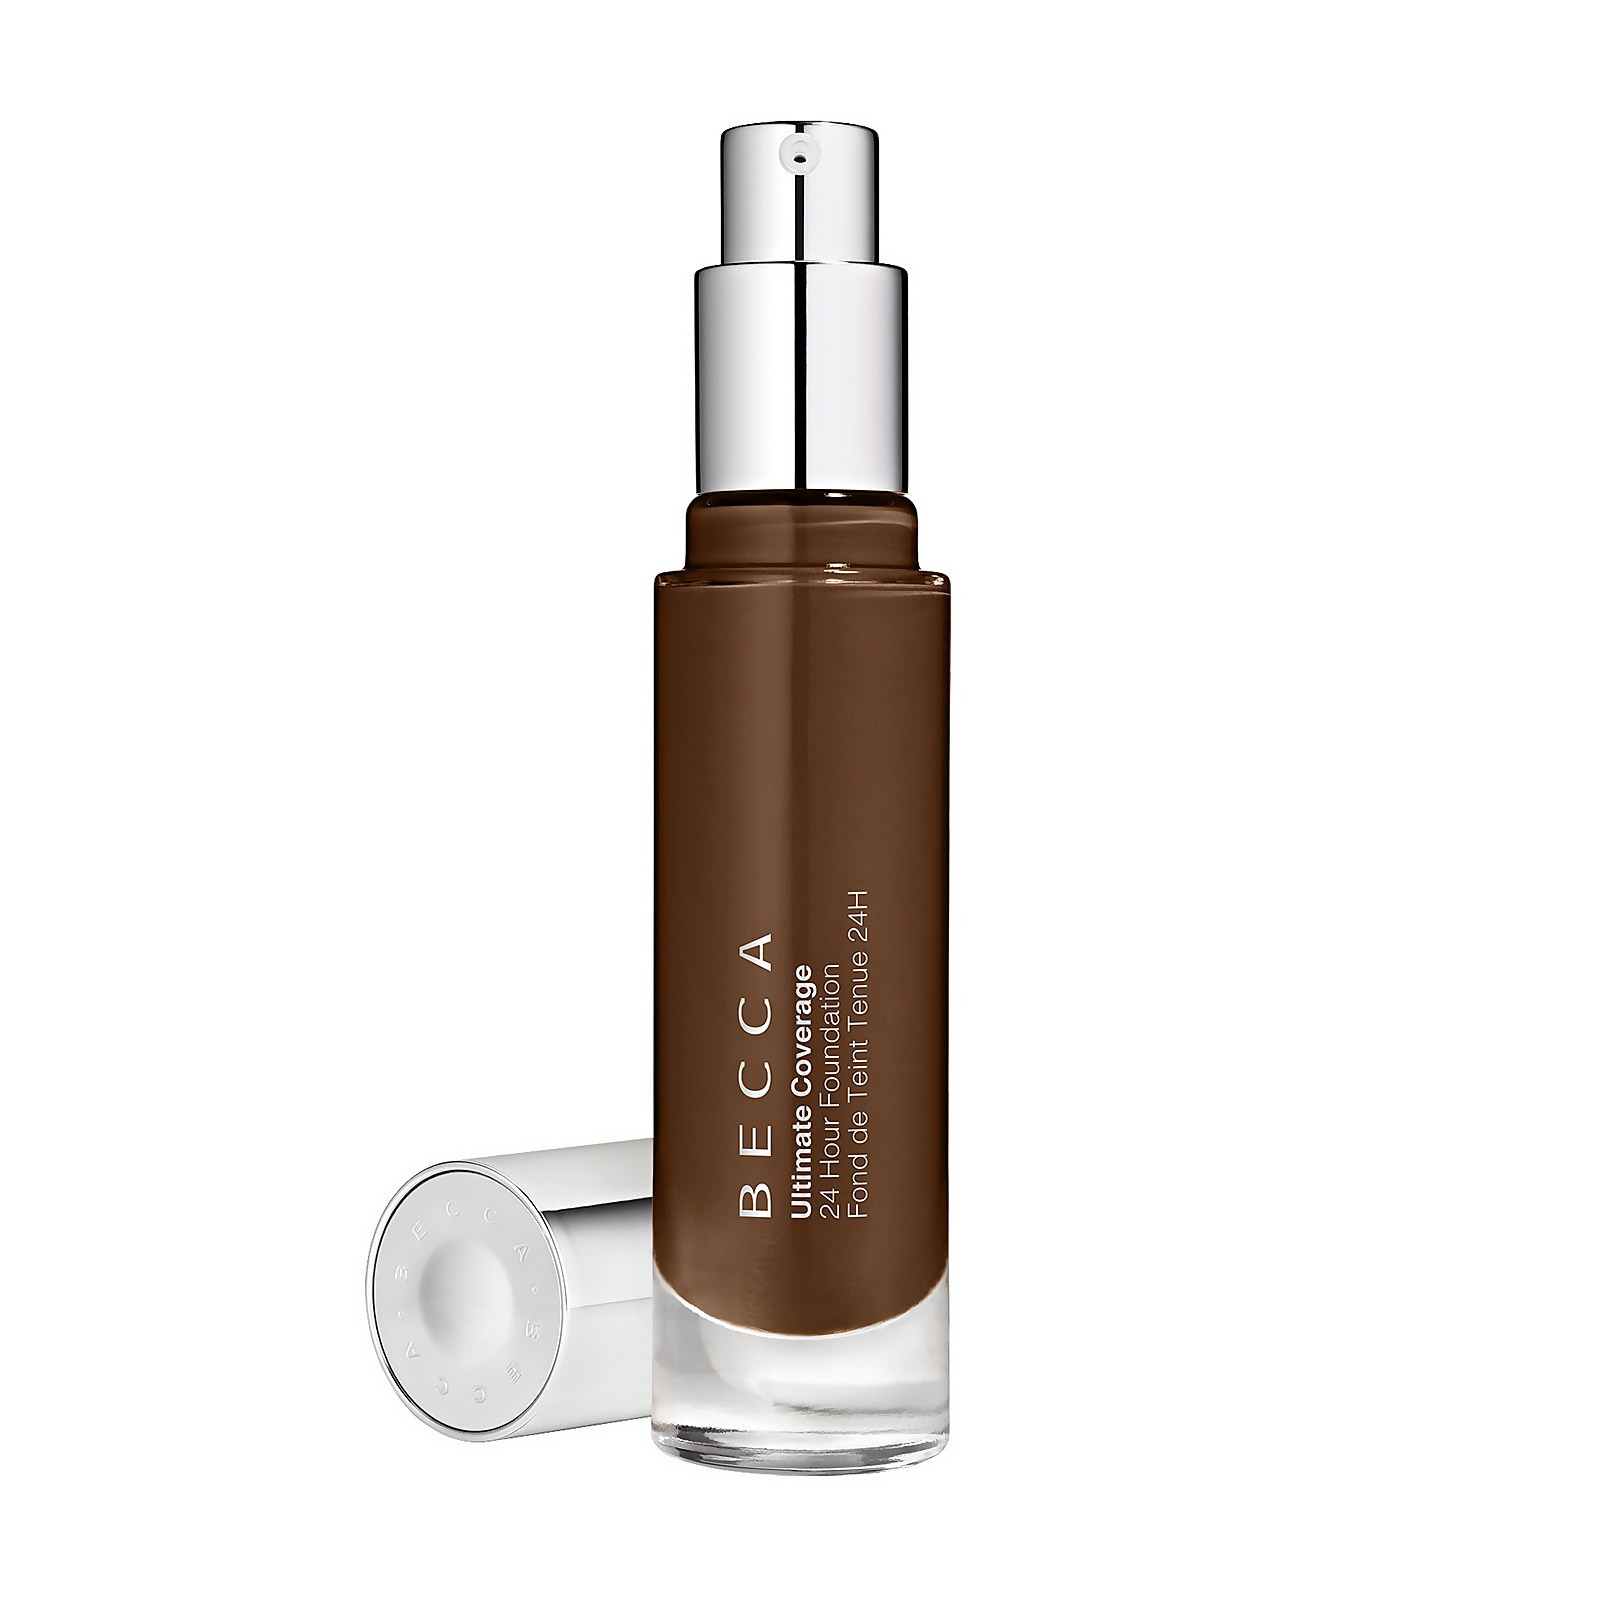 BECCA Ultimate Coverage 24 Hour Foundation 30ml (Various Shades) - Espresso